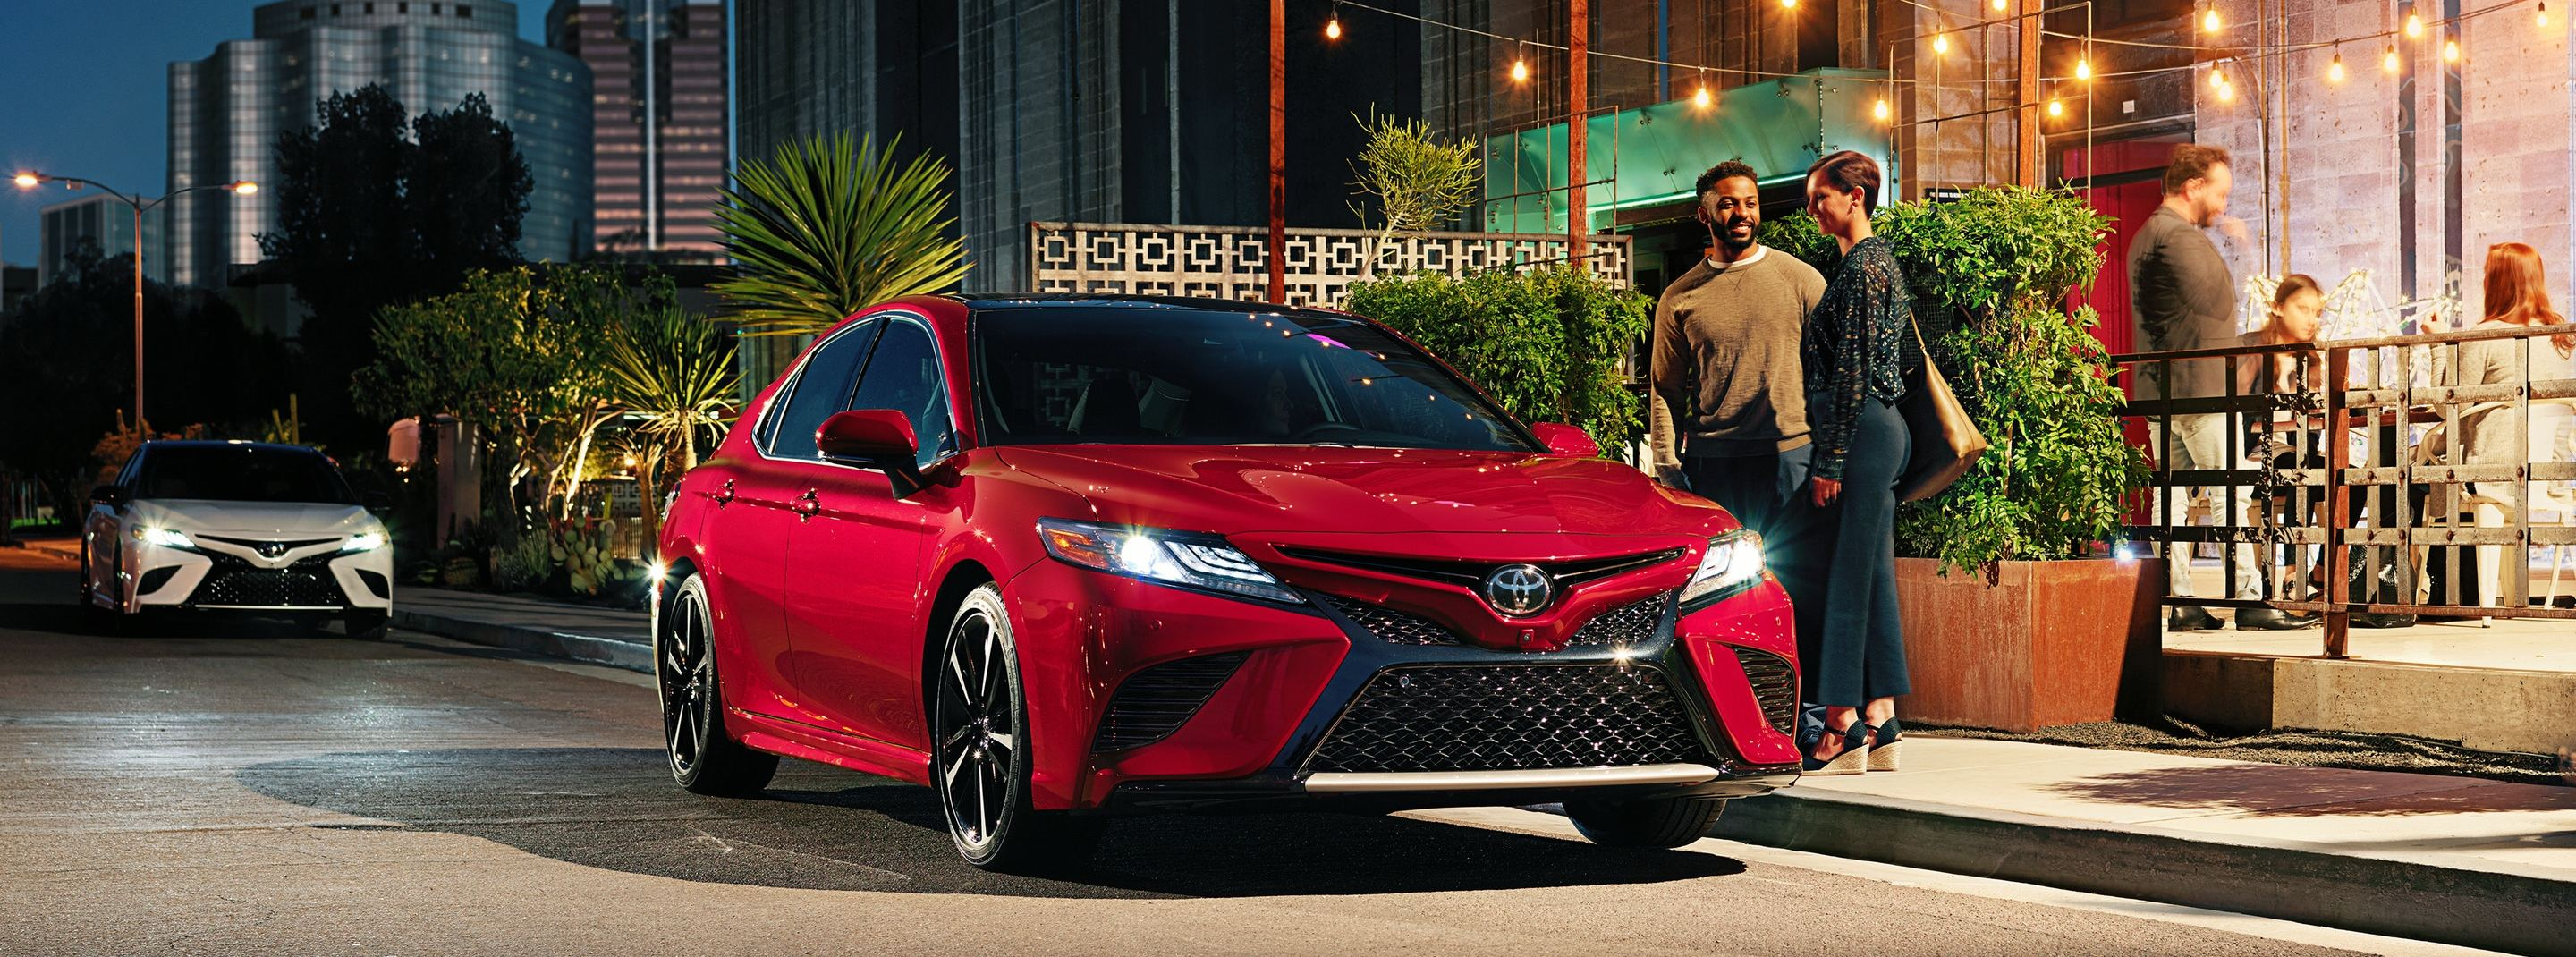 2020 Toyota Camry Lease near Queens, NY